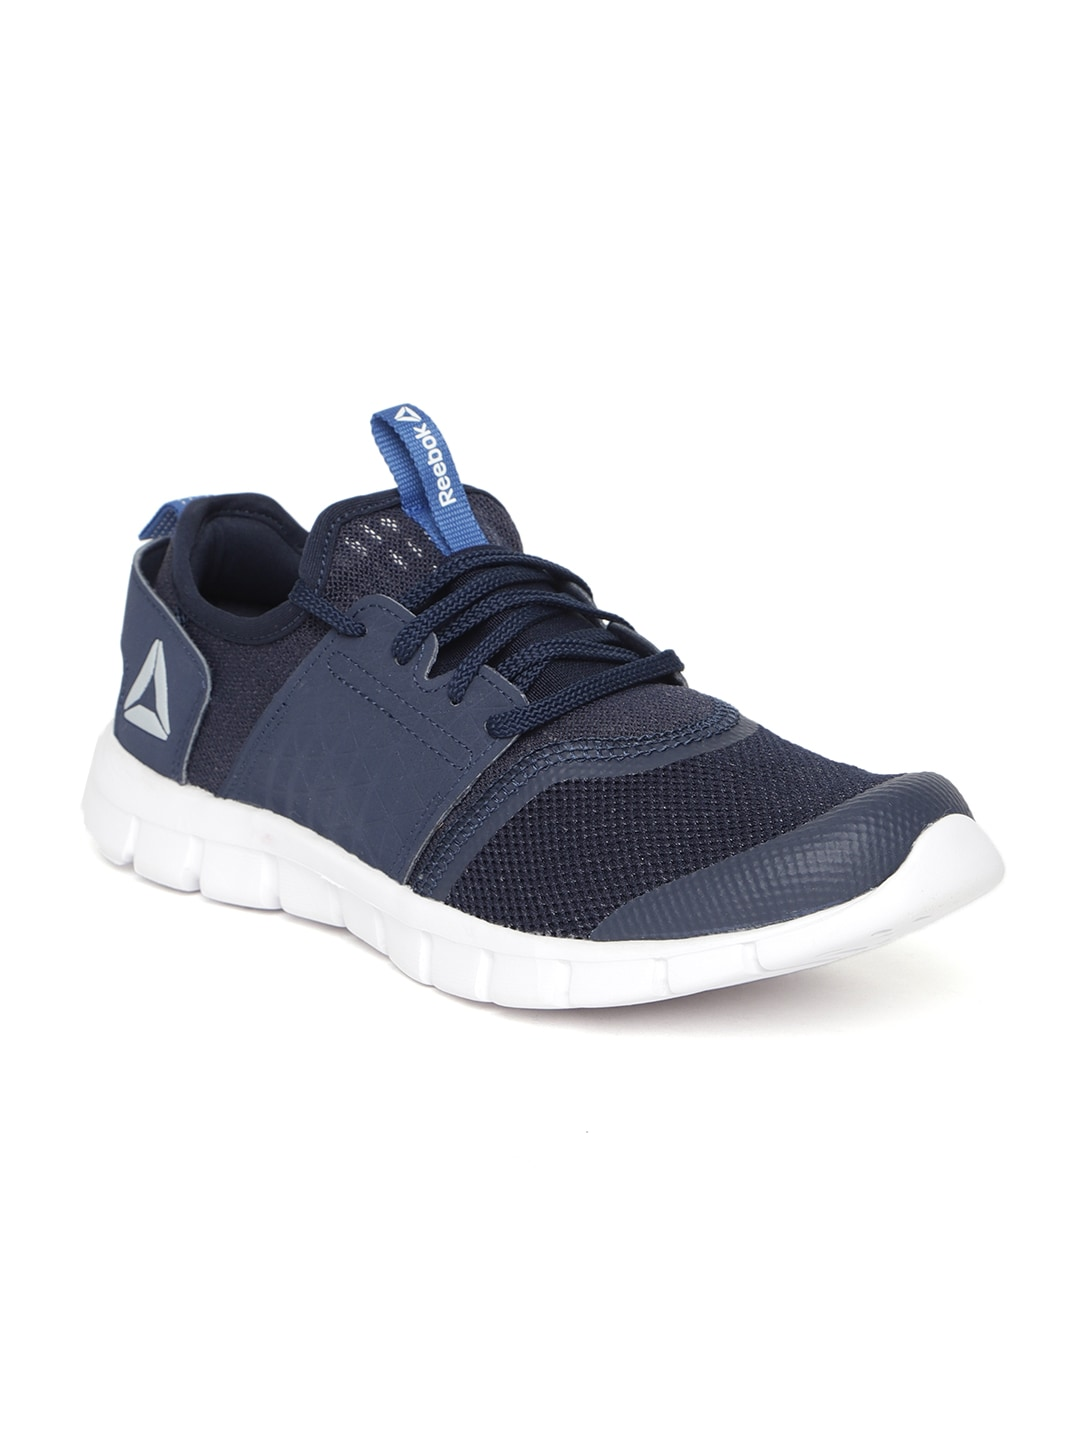 2da5e4c4930a Reebok Shoes - Buy Reebok Shoes For Men   Women Online